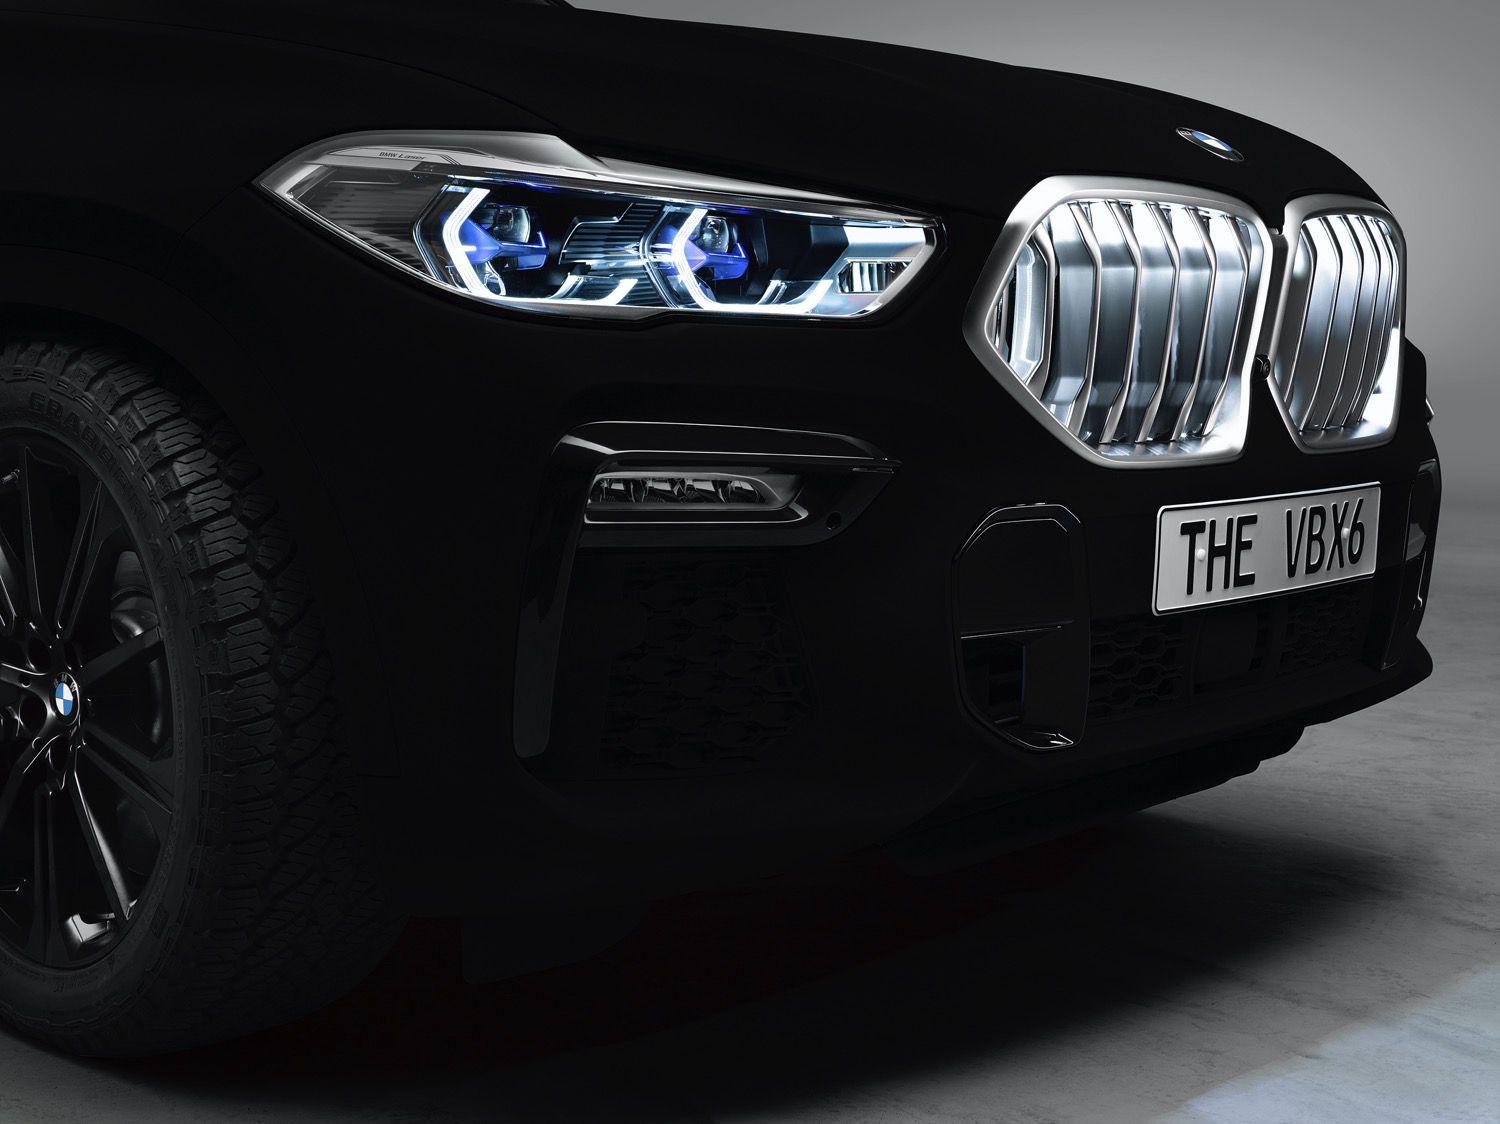 Just What We Needed Dept A Bmw With Paint So Black It S Almost Invisible